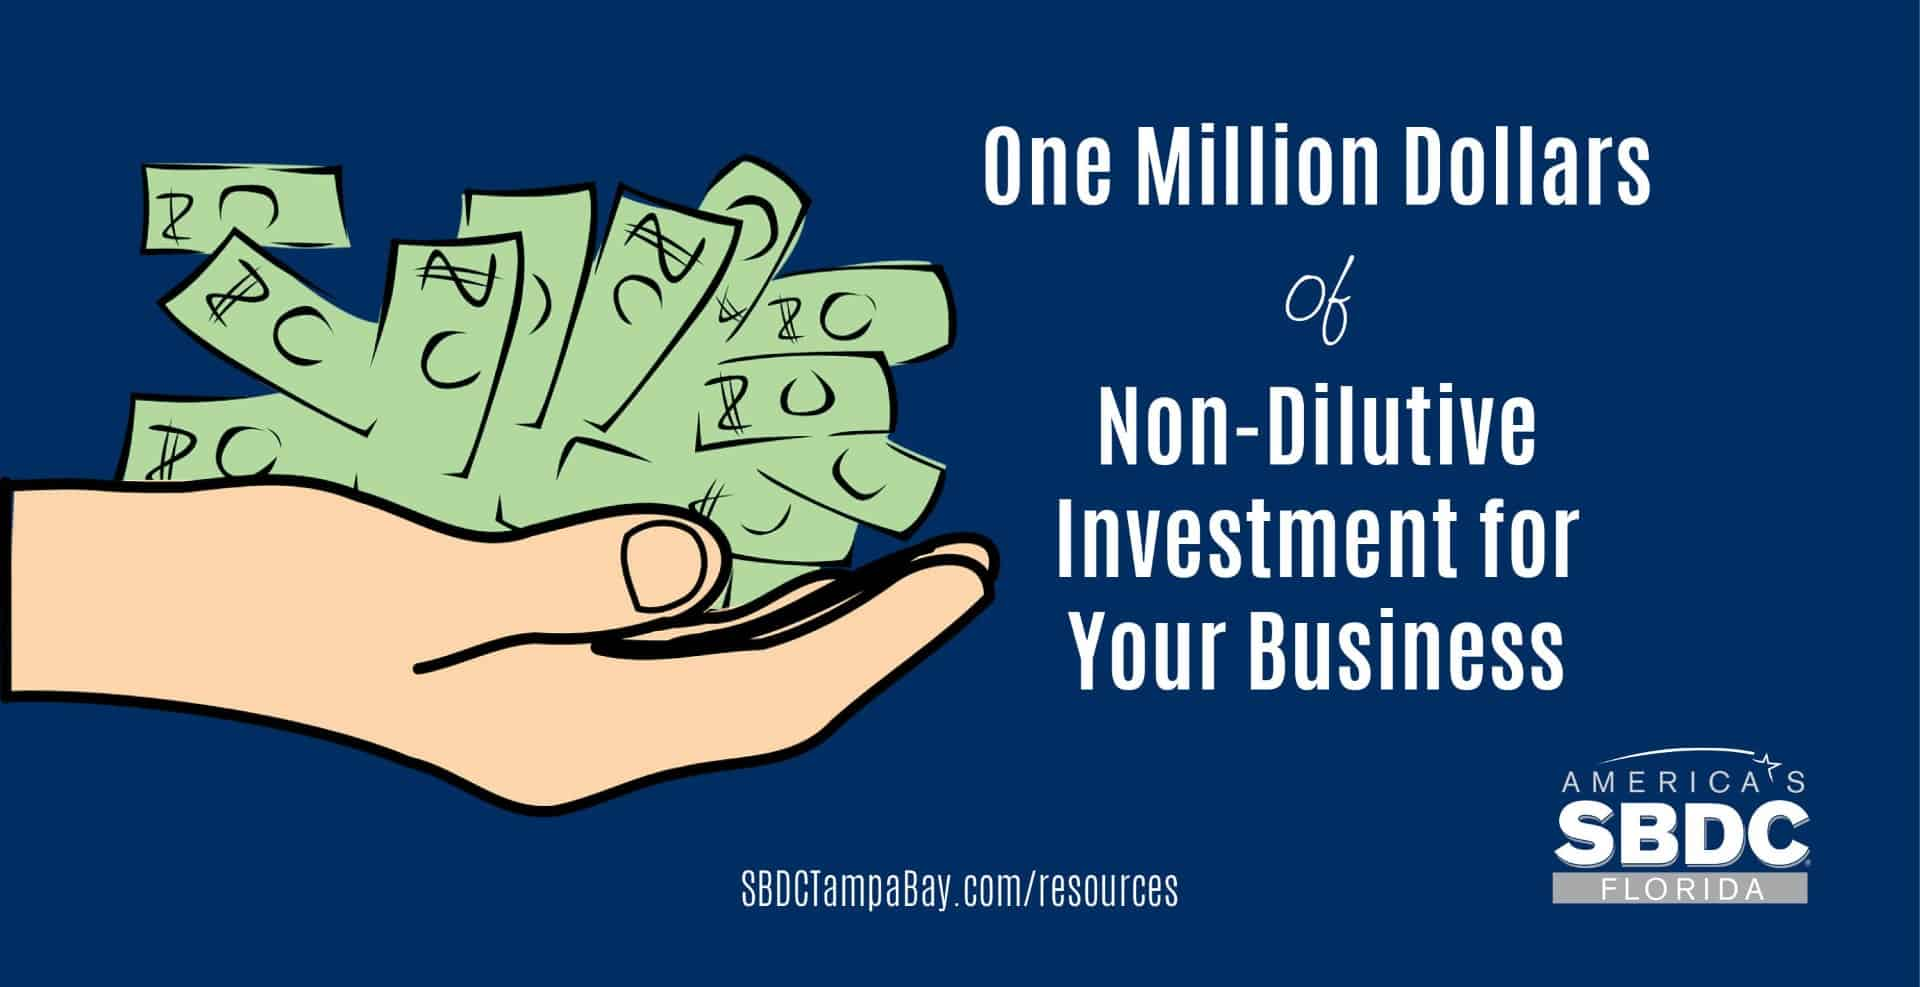 $1 Million Dollars of Non-Dilutive Investment for Your Business